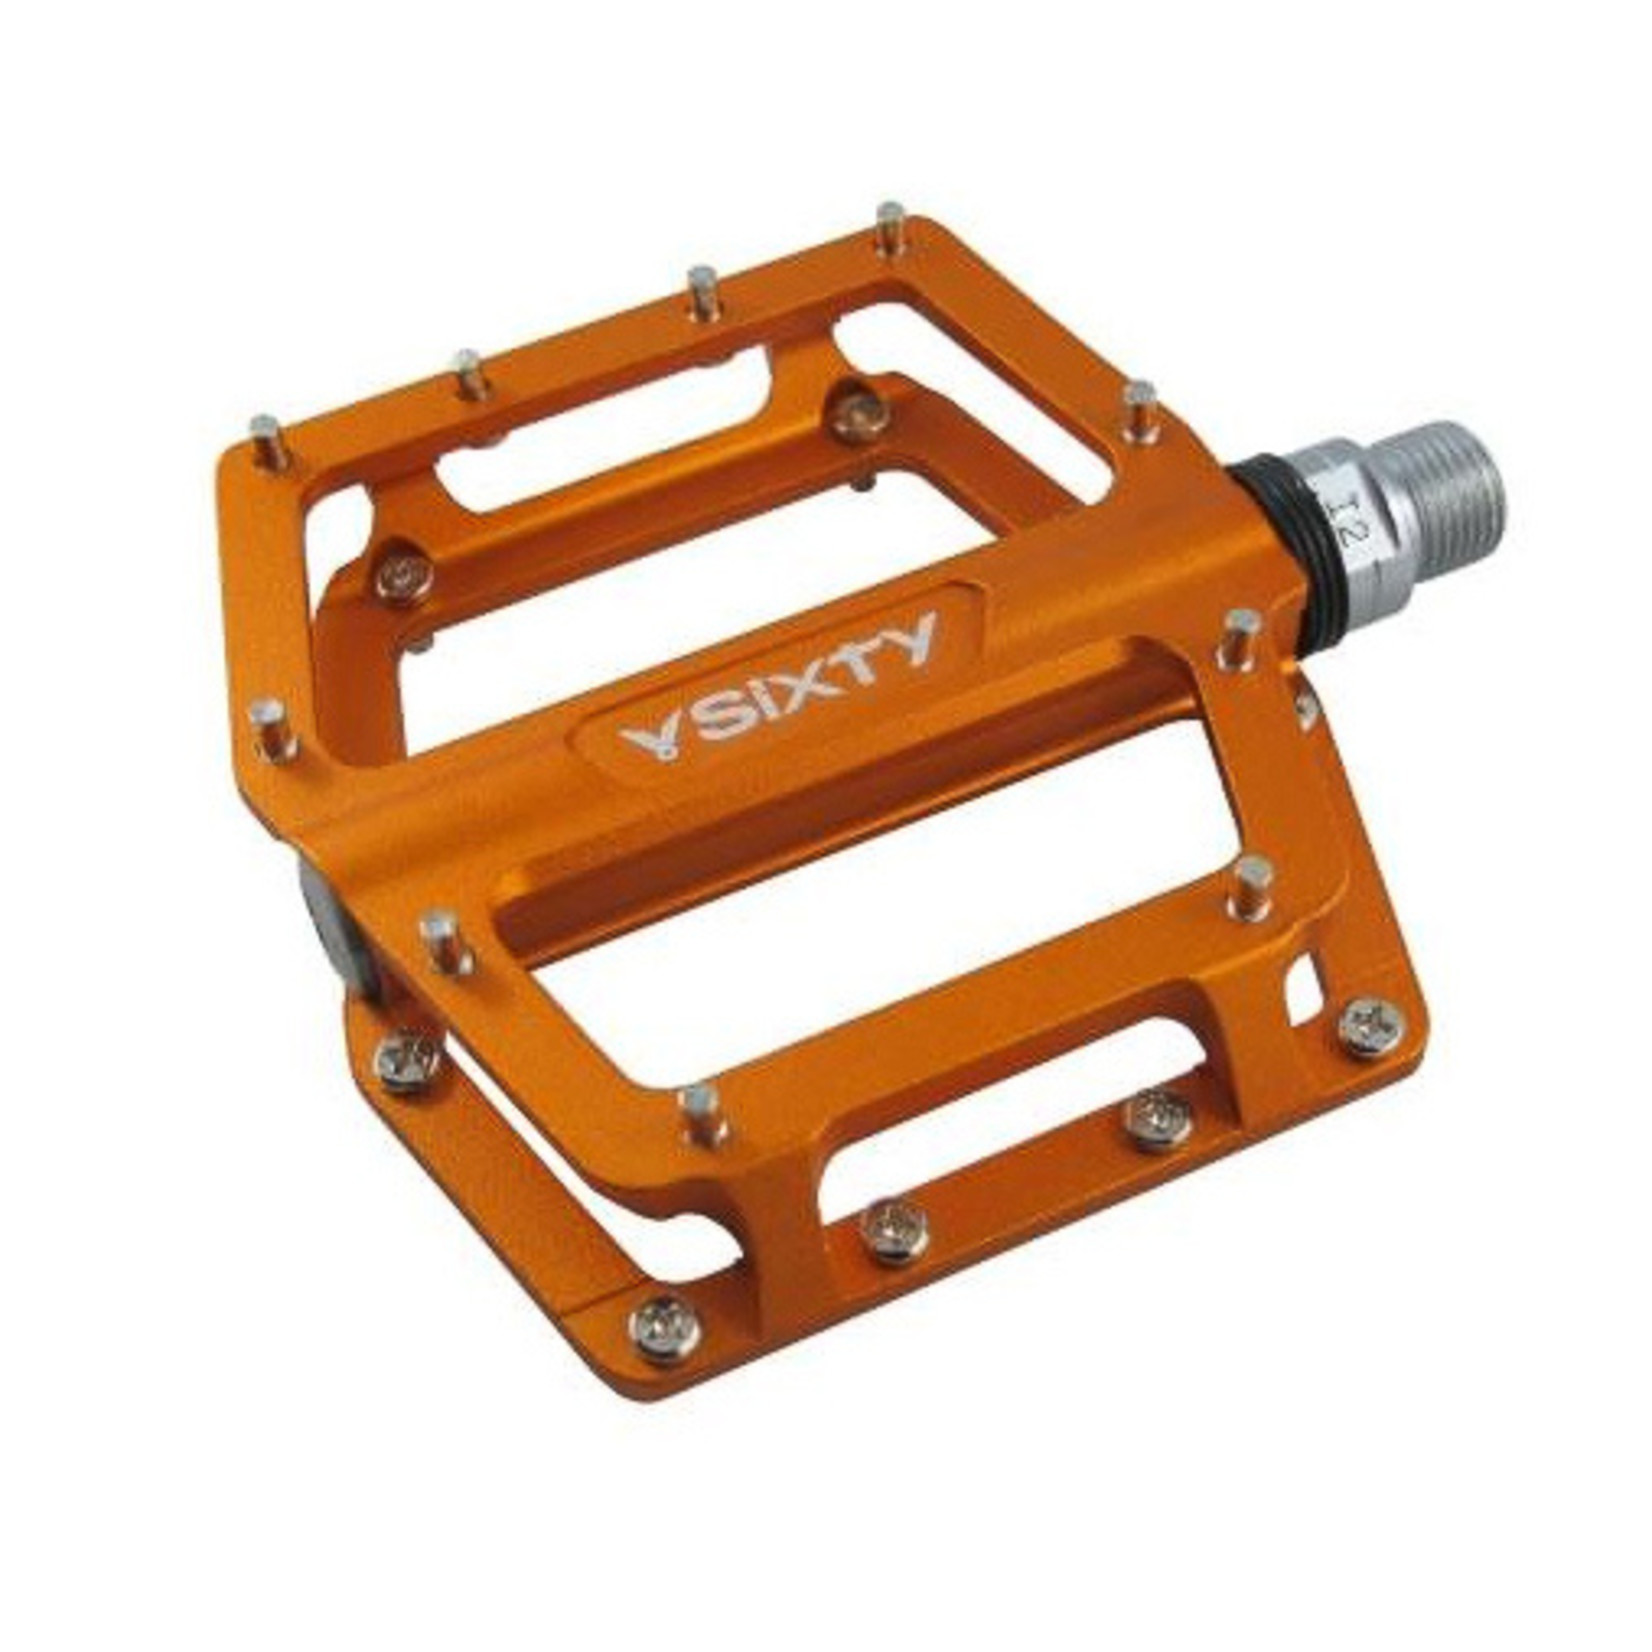 V-Sixty B184 Pedals